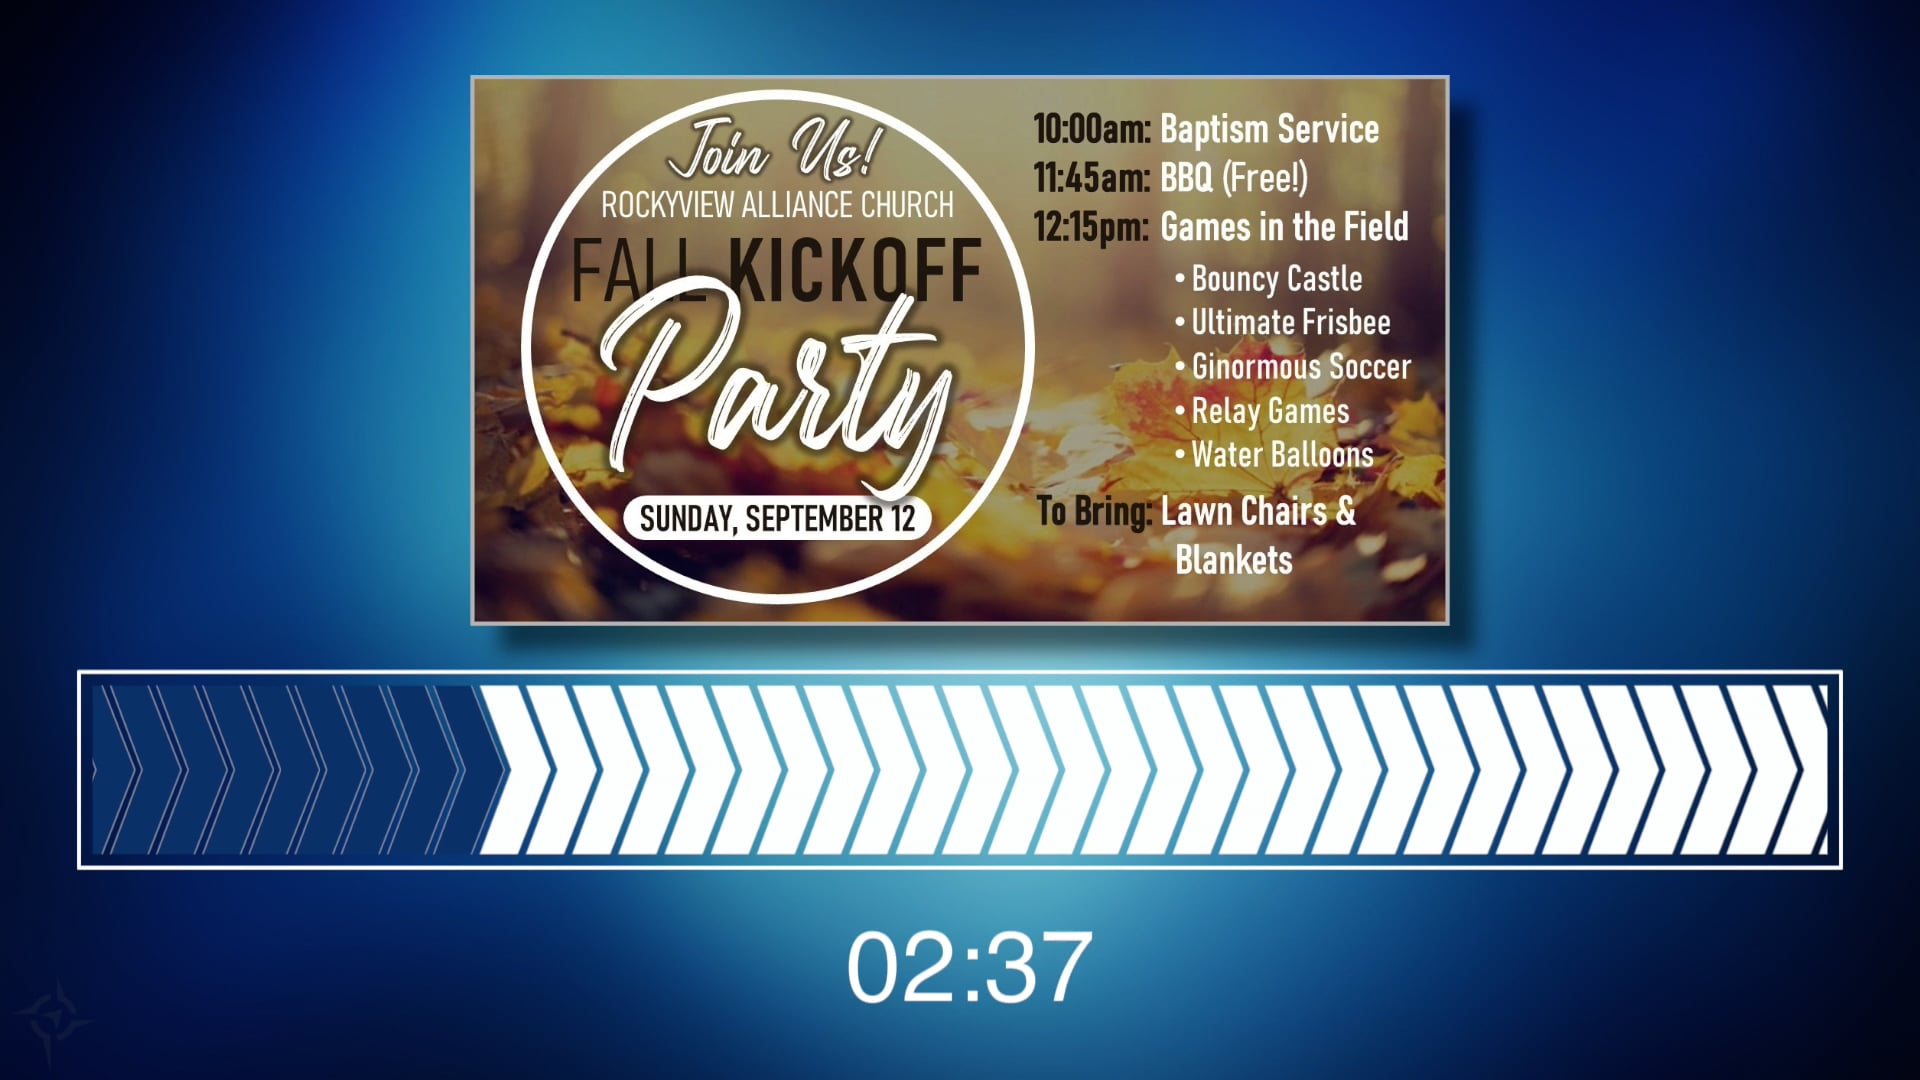 Fall Kickoff Party - Dance Music